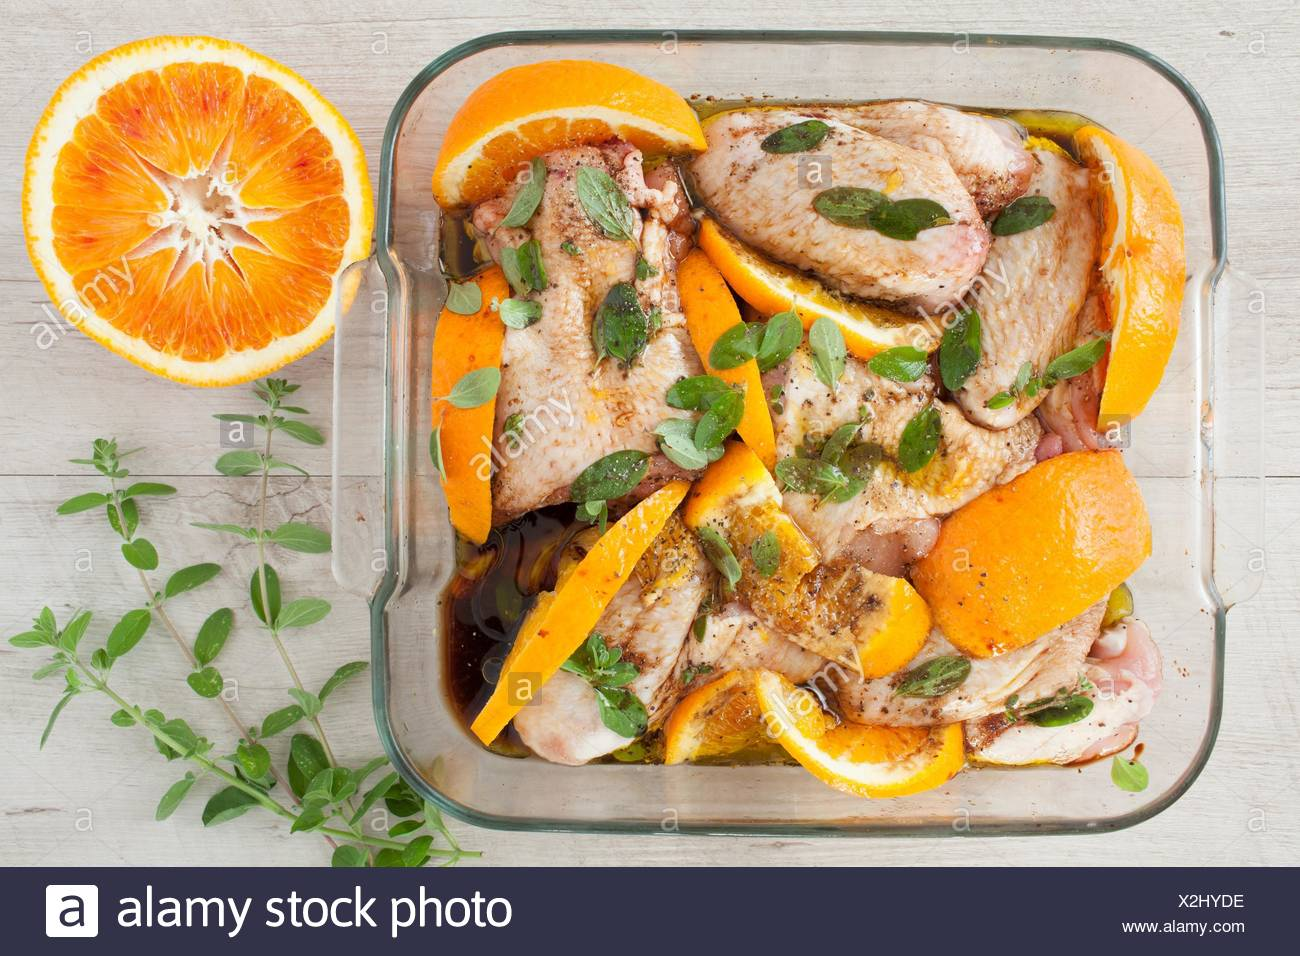 Top view of cooking pan with raw chicken wings marjoram, orange and soya sauce. - Stock Image